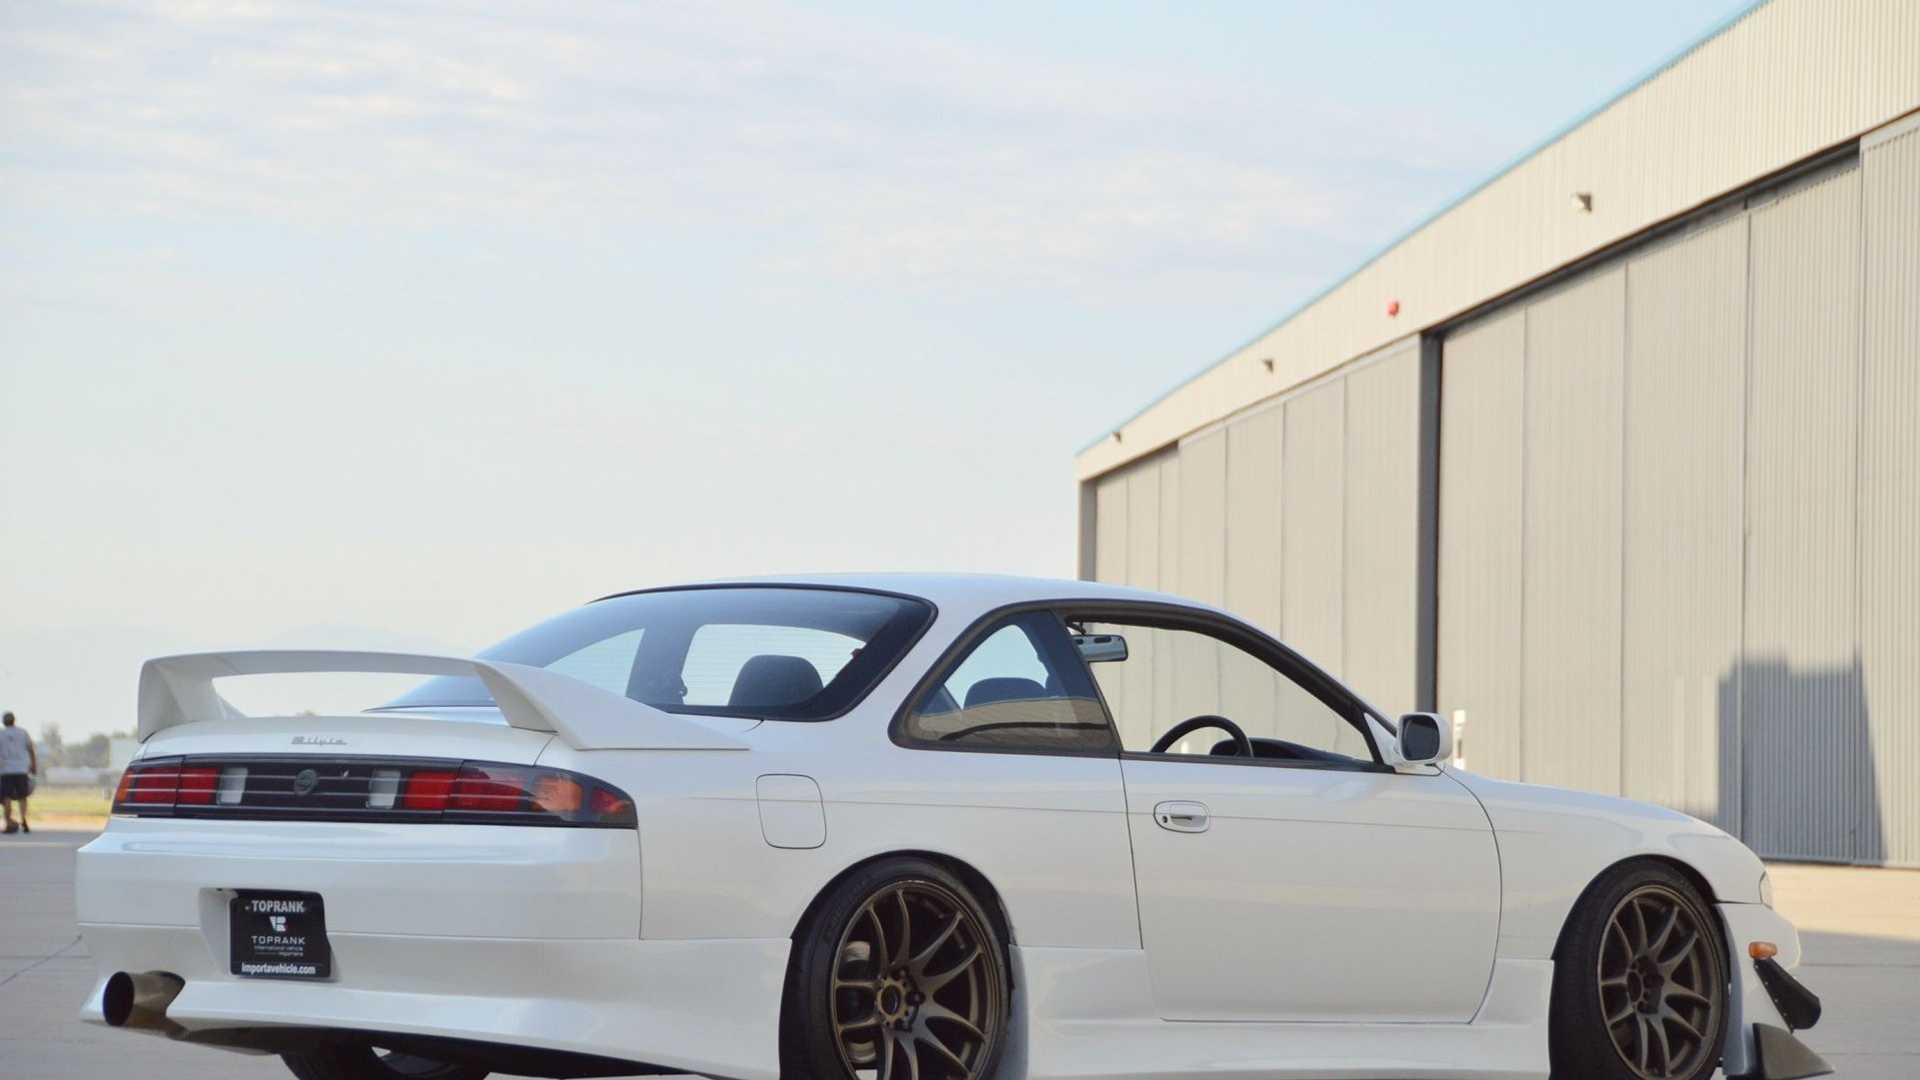 Enjoy Some Import Fun In A Modded 1994 Nissan Silvia S14